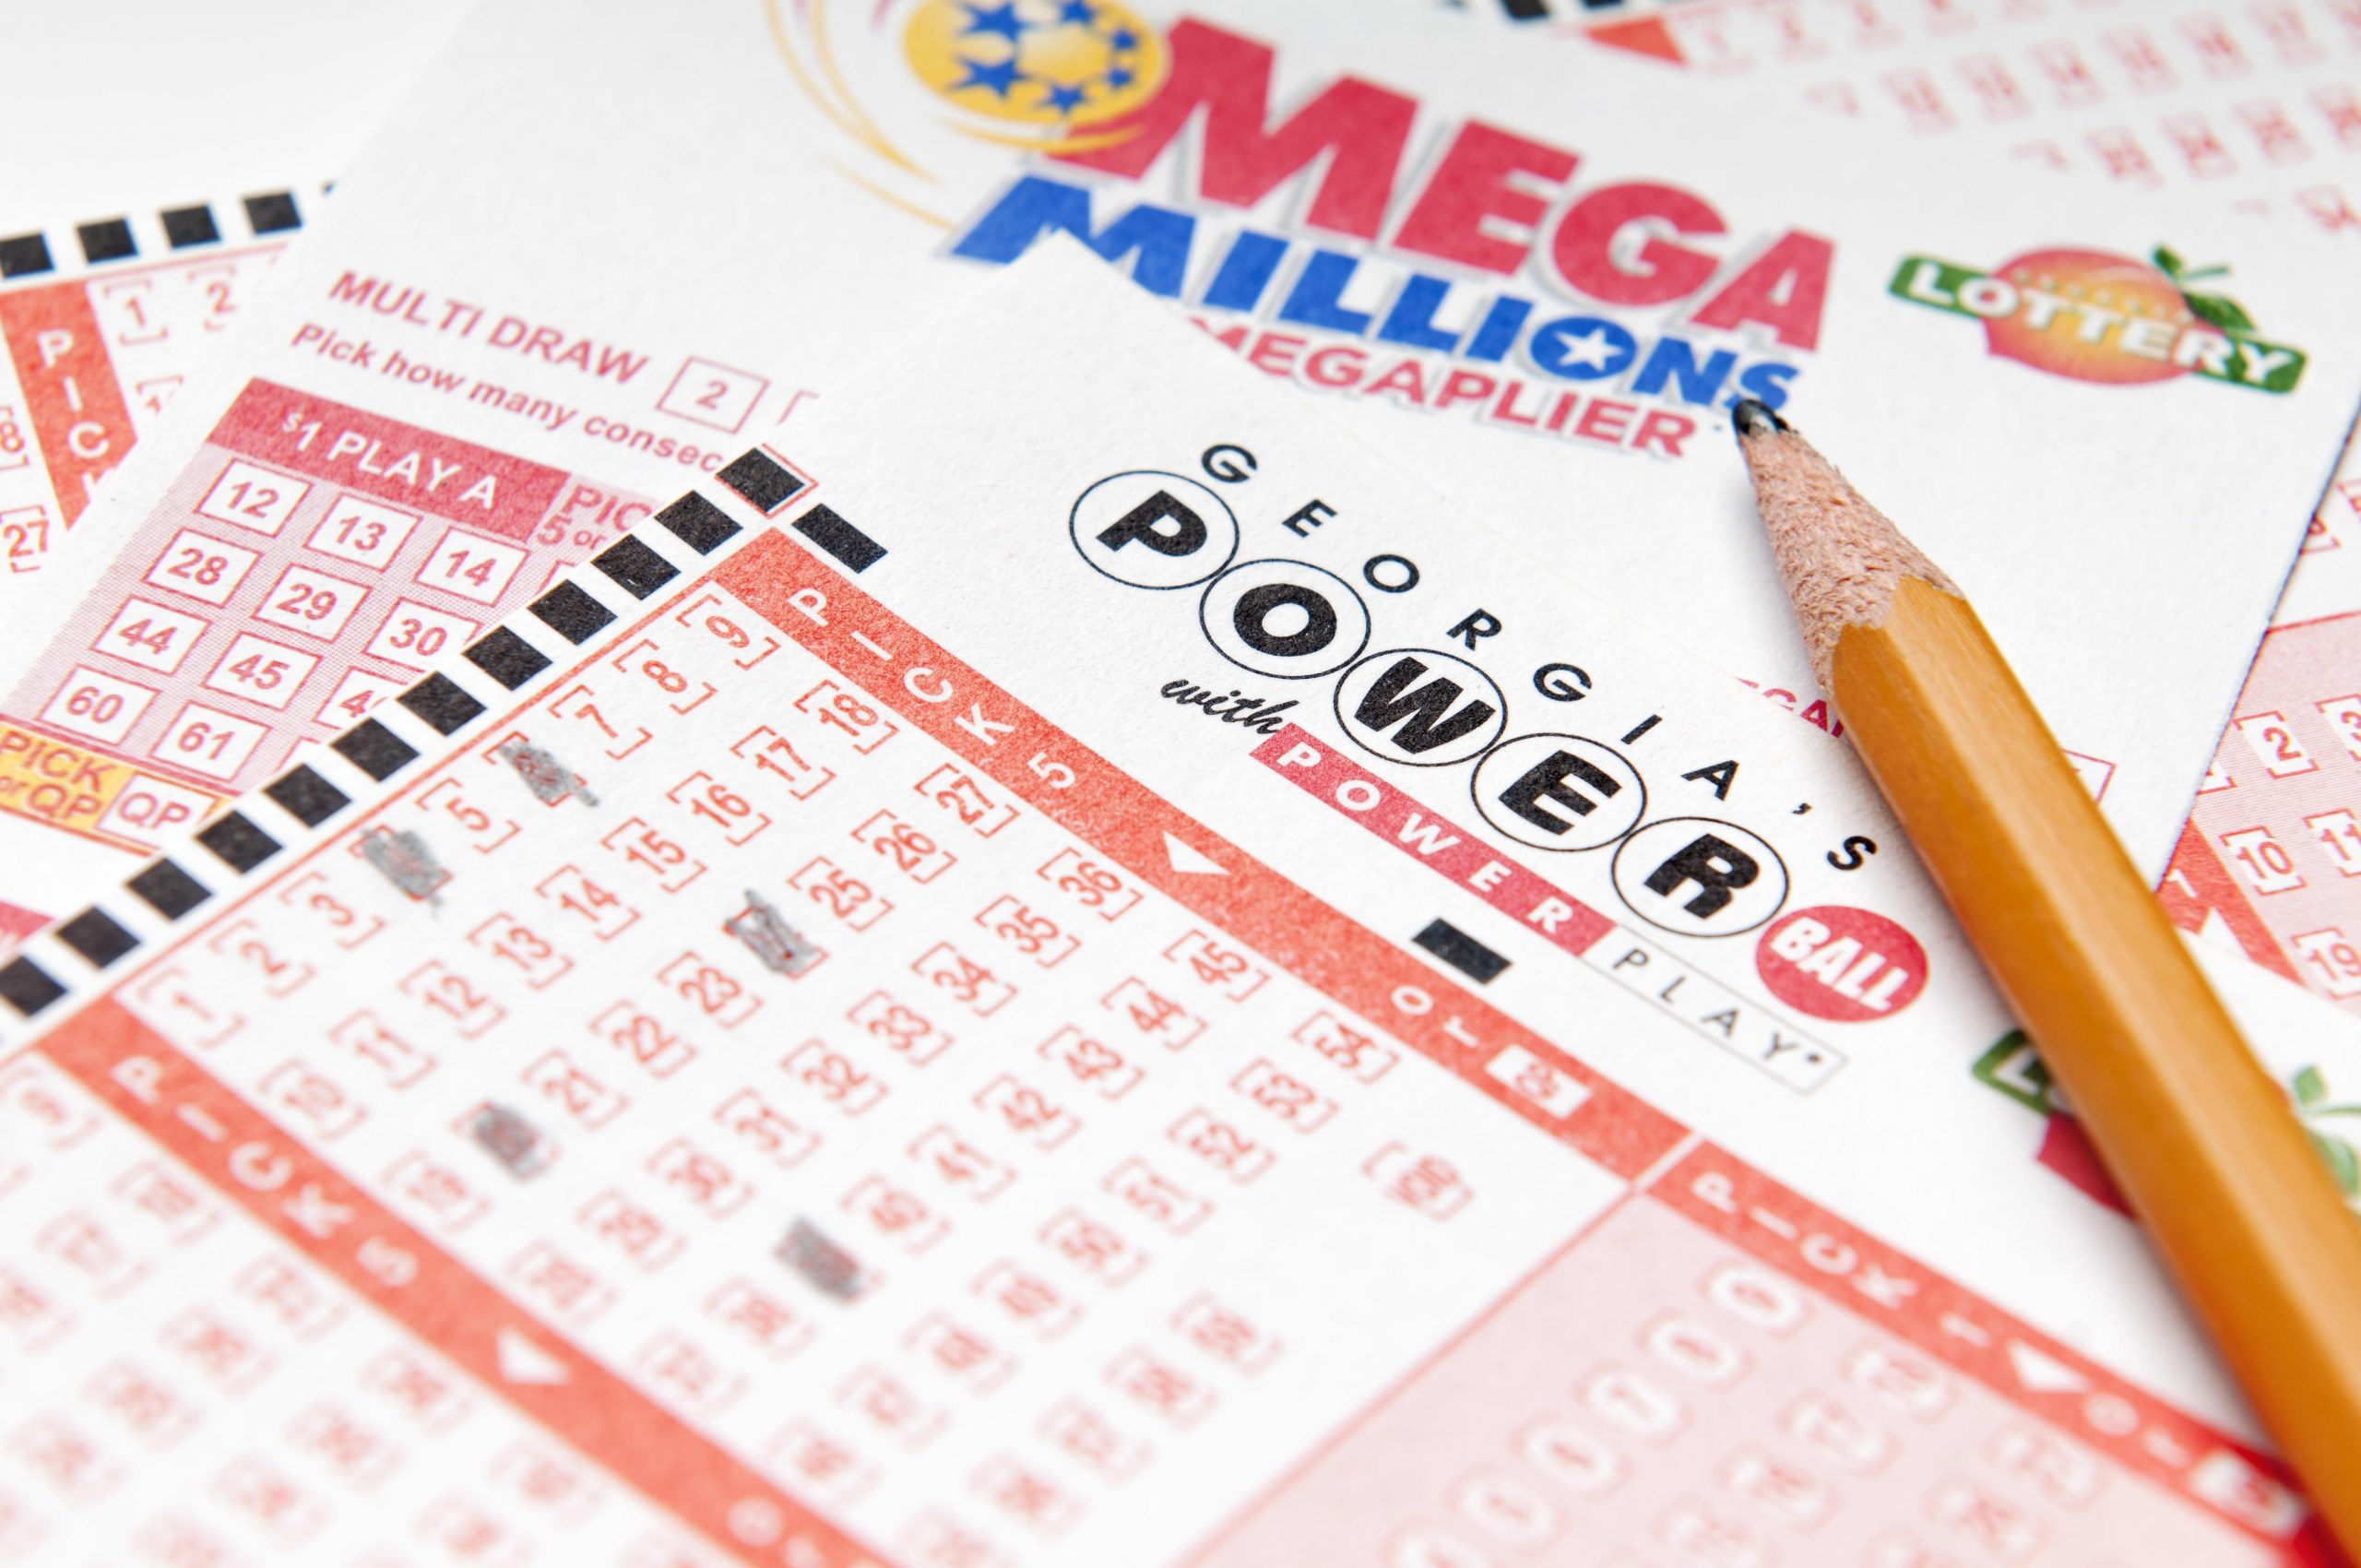 Both Powerball and Mega Millions jackpots are above $400 million. Here's what to do if you win